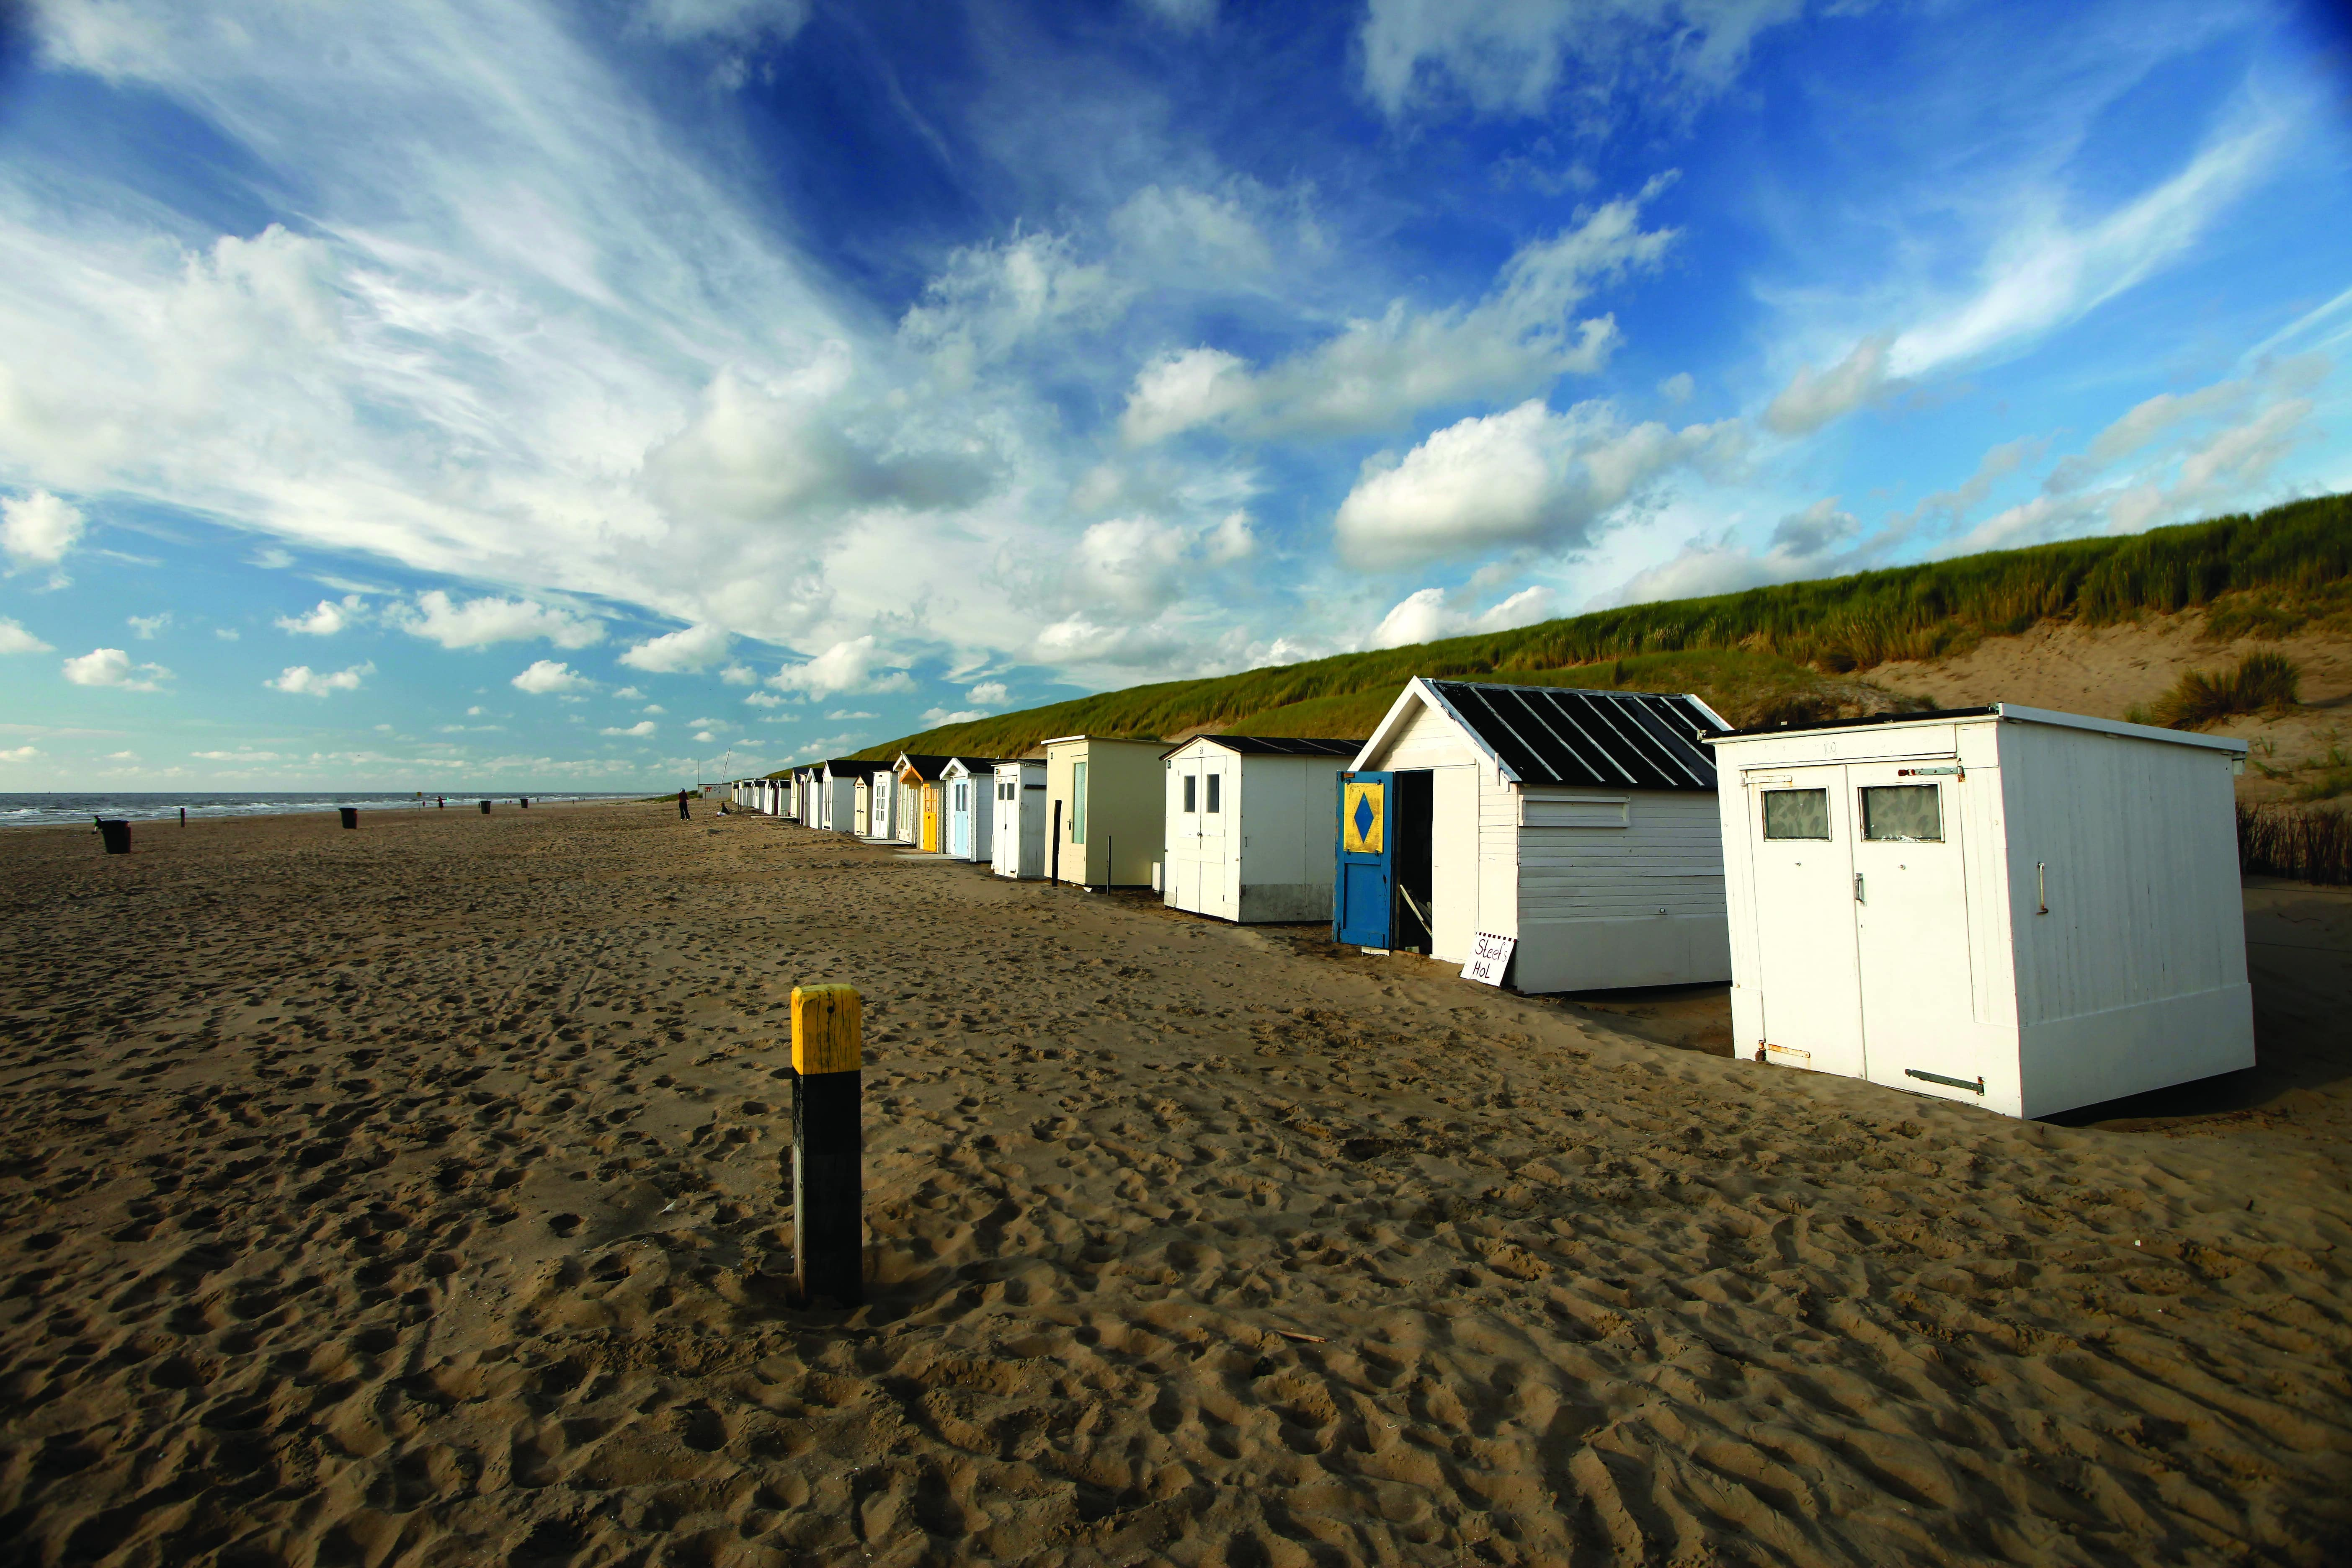 The beach of Texel, one of the Frisian Islands